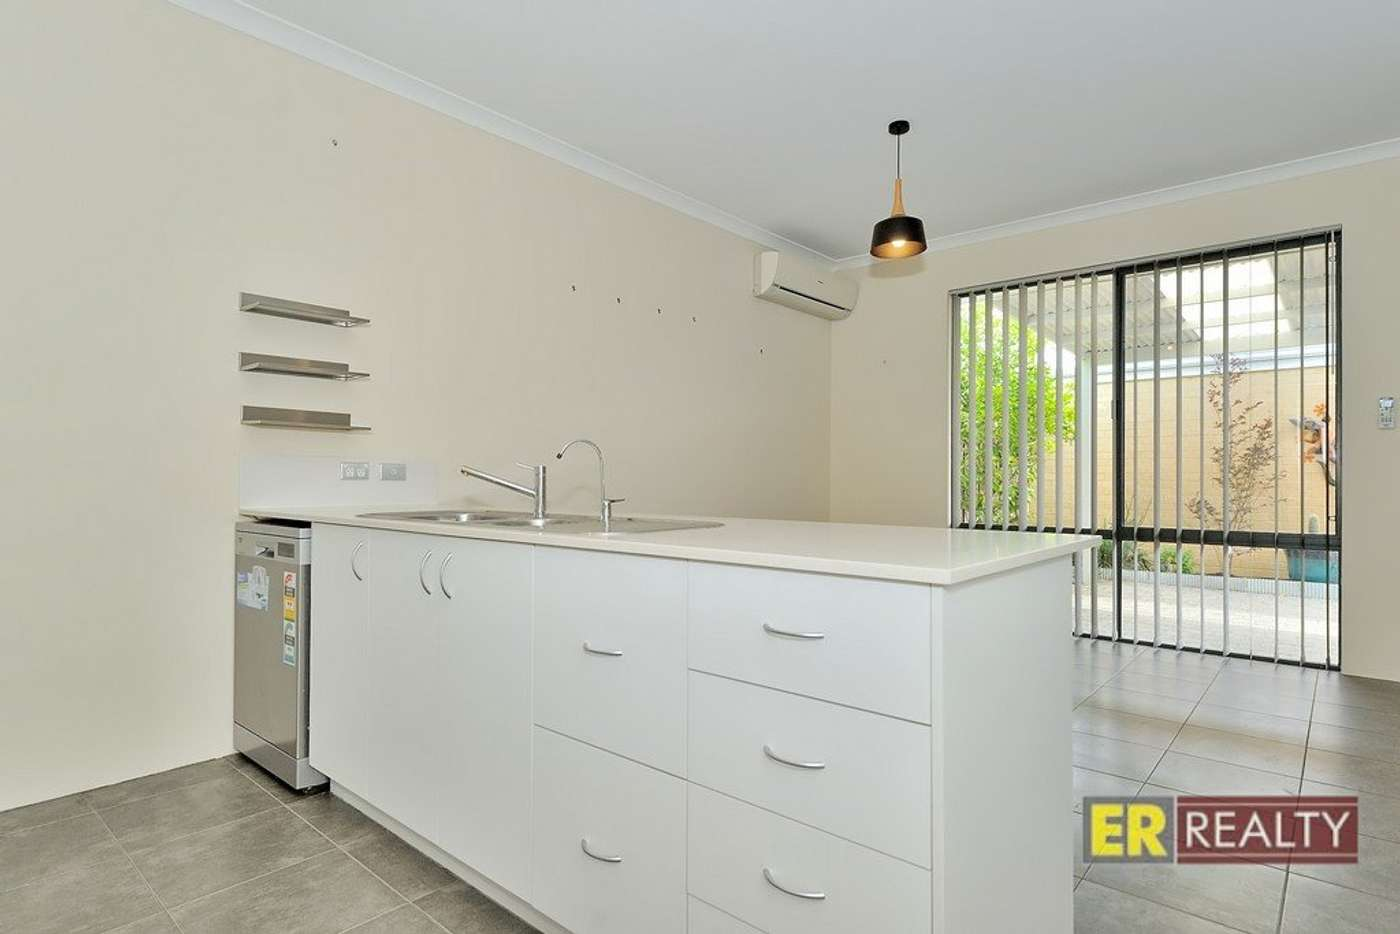 Sixth view of Homely house listing, 56 Maffina Parade, Ellenbrook WA 6069